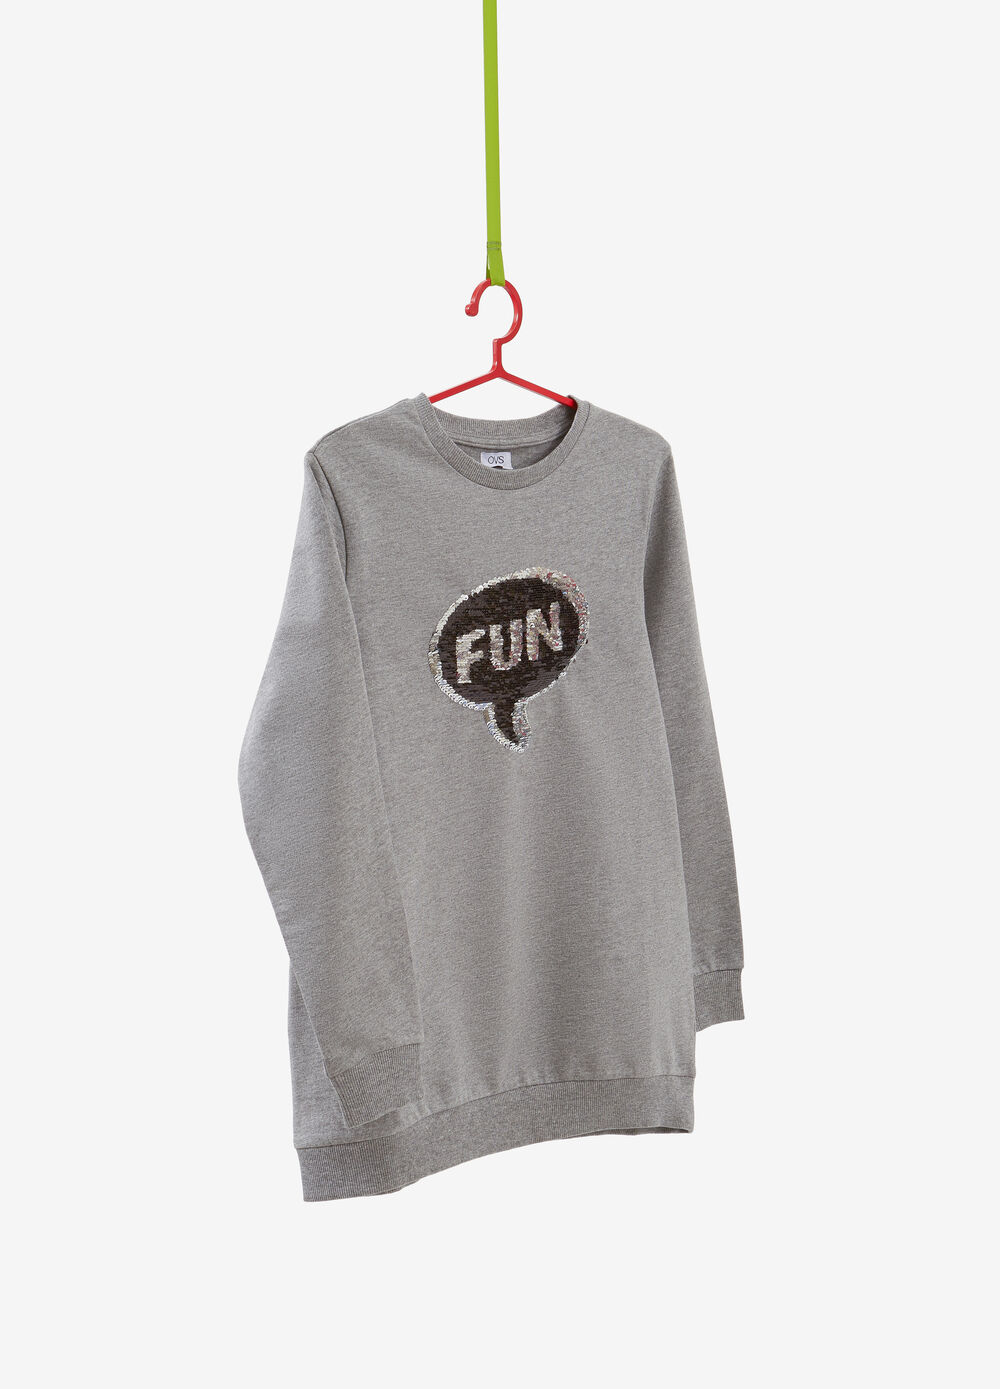 100% cotton sweatshirt with sequinned lettering